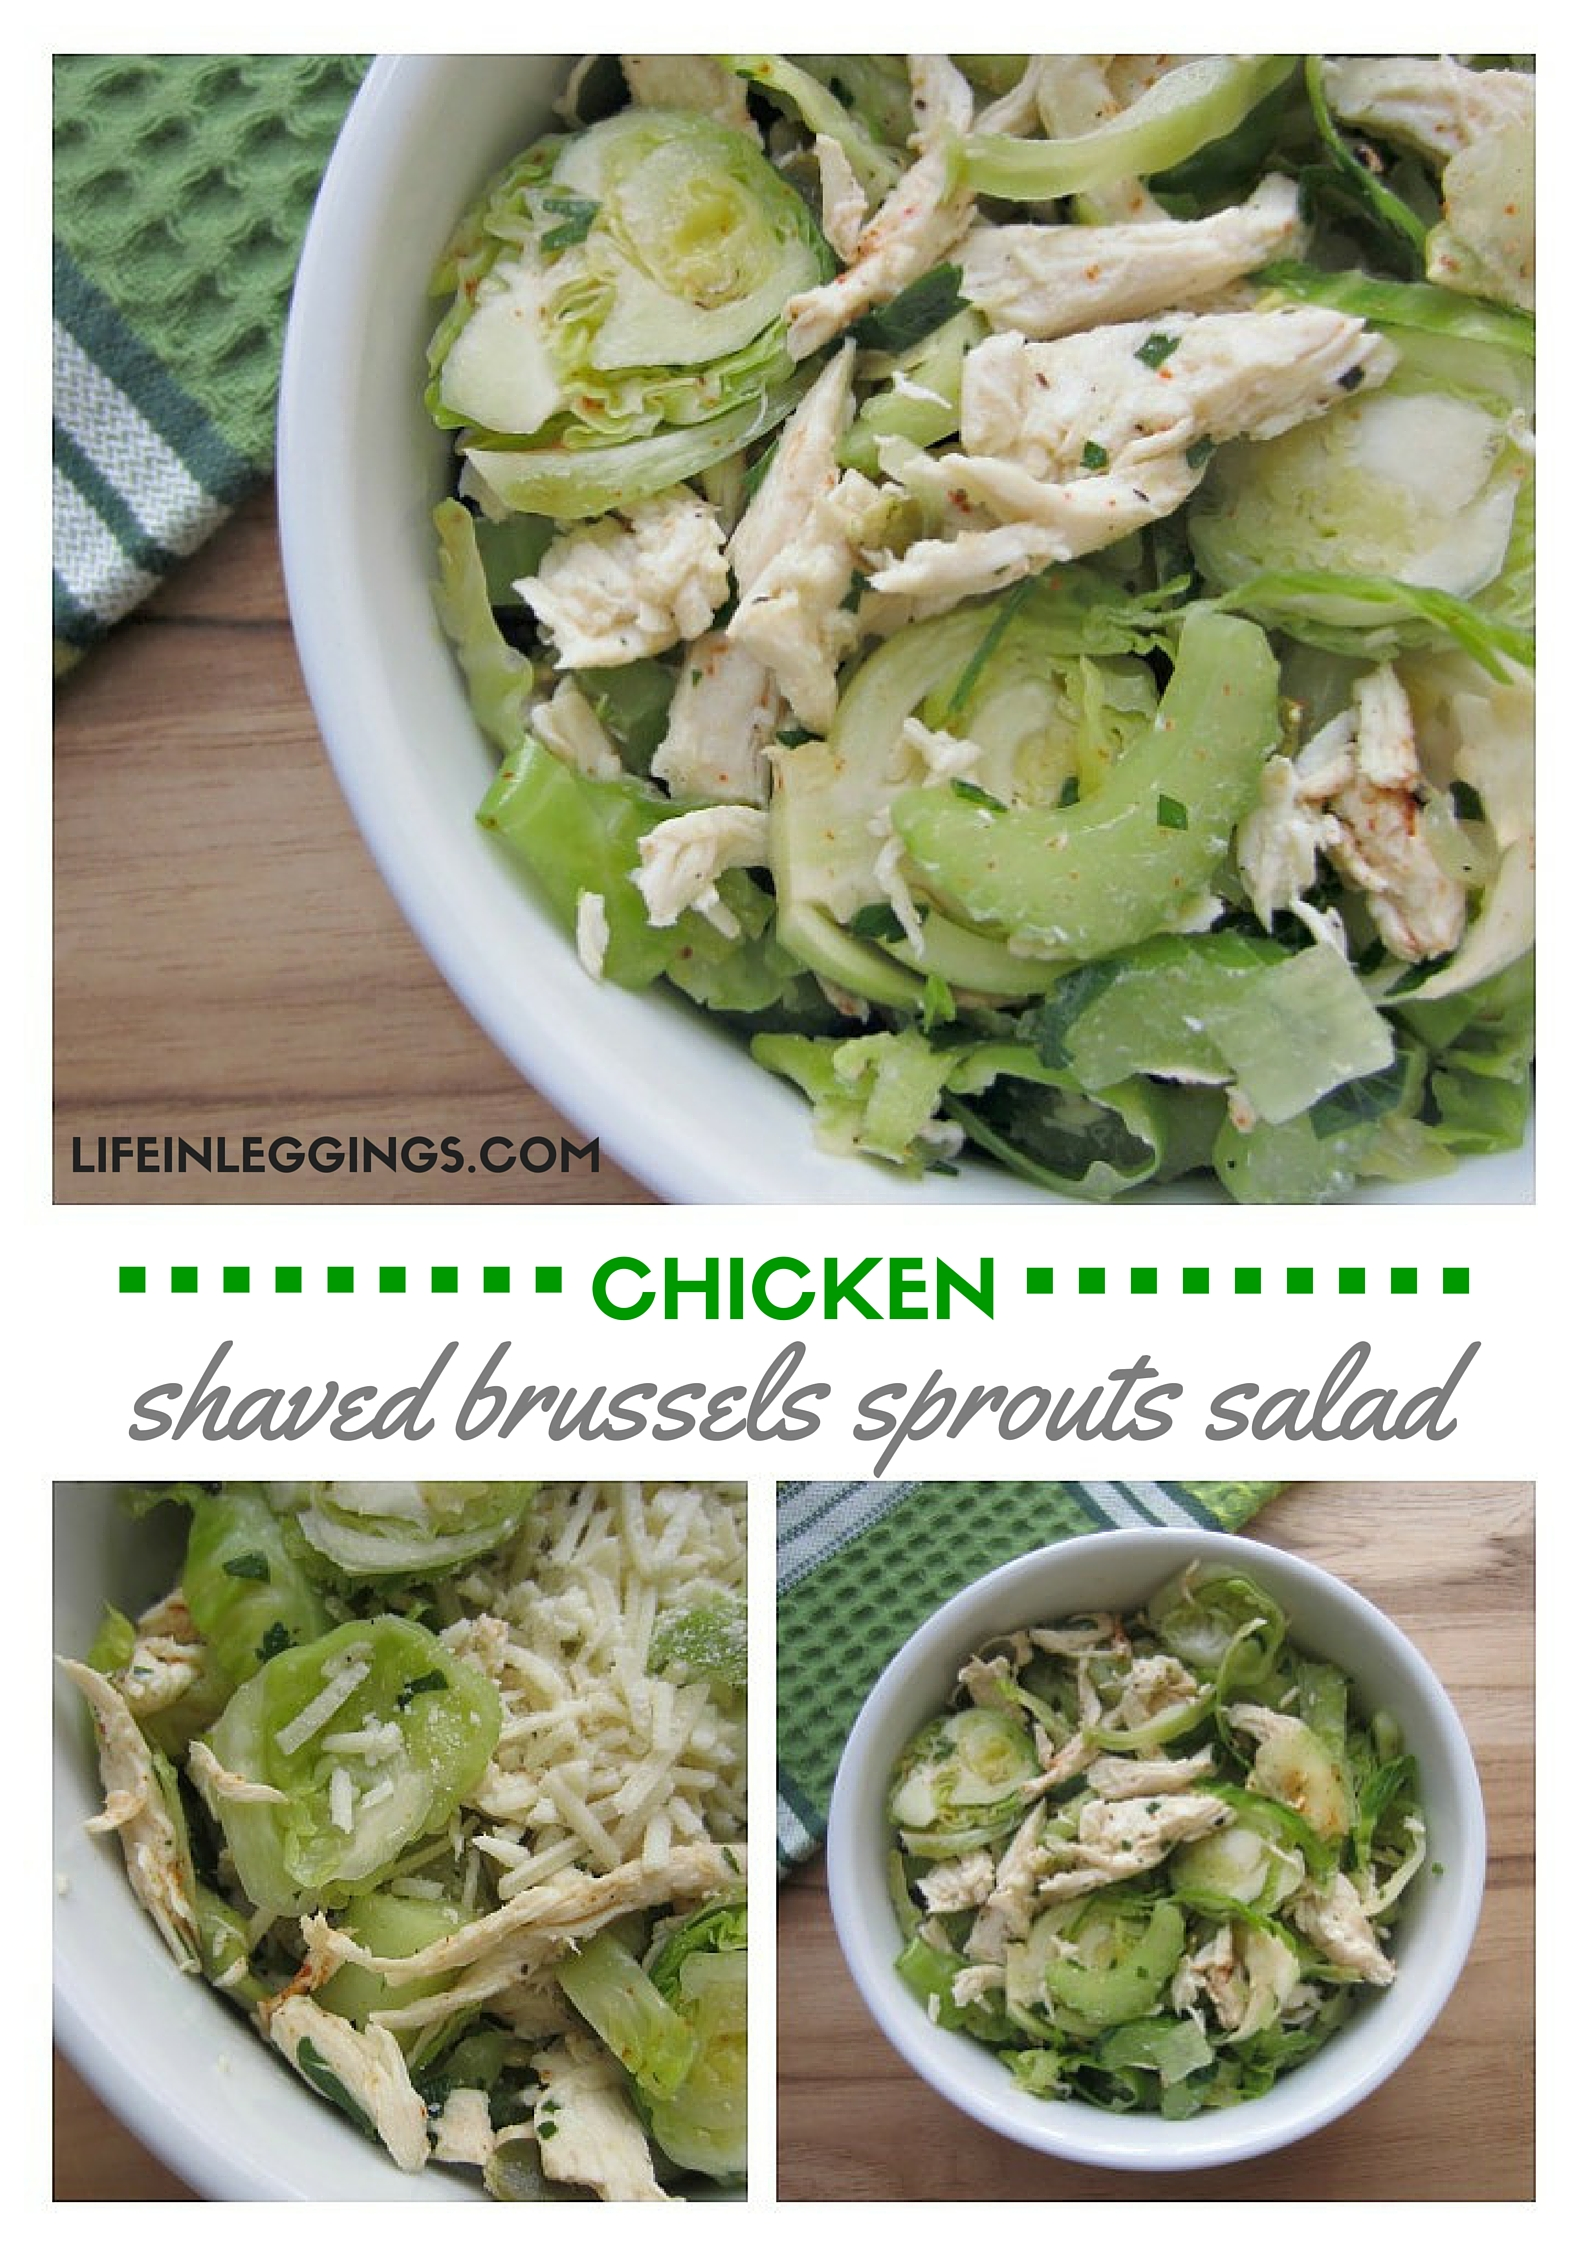 shaved brussels sprouts salad with chicken